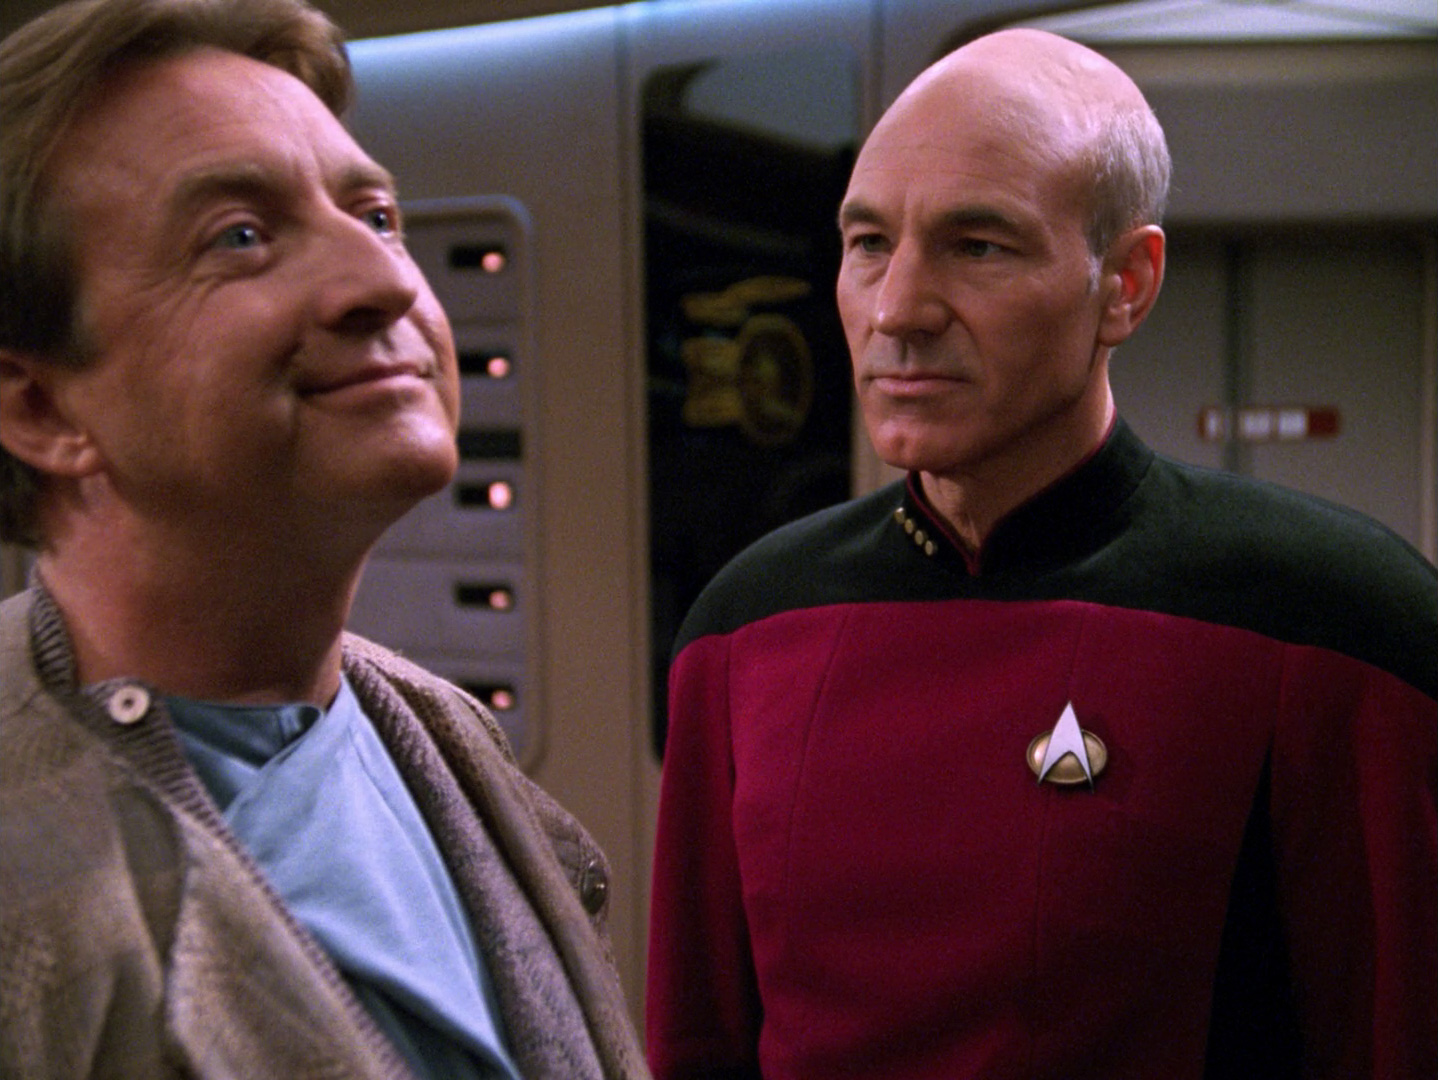 paul_stubbs_and_jean-luc_picard.jpg